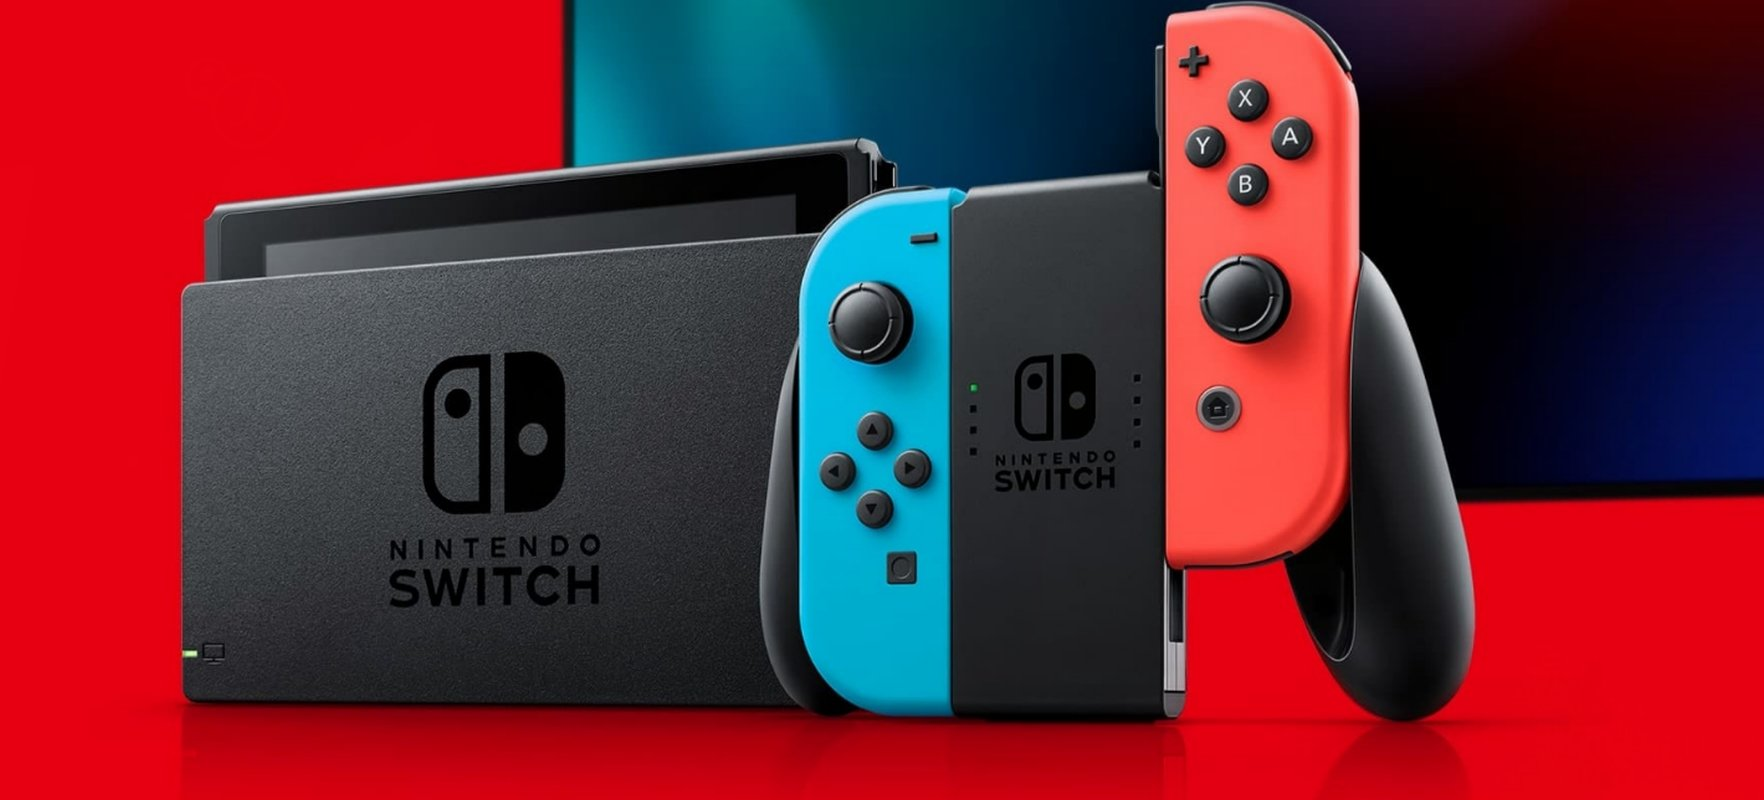 Nintendo Offers New Guidelines On How to Disinfect The Nintendo Switch And Accessories